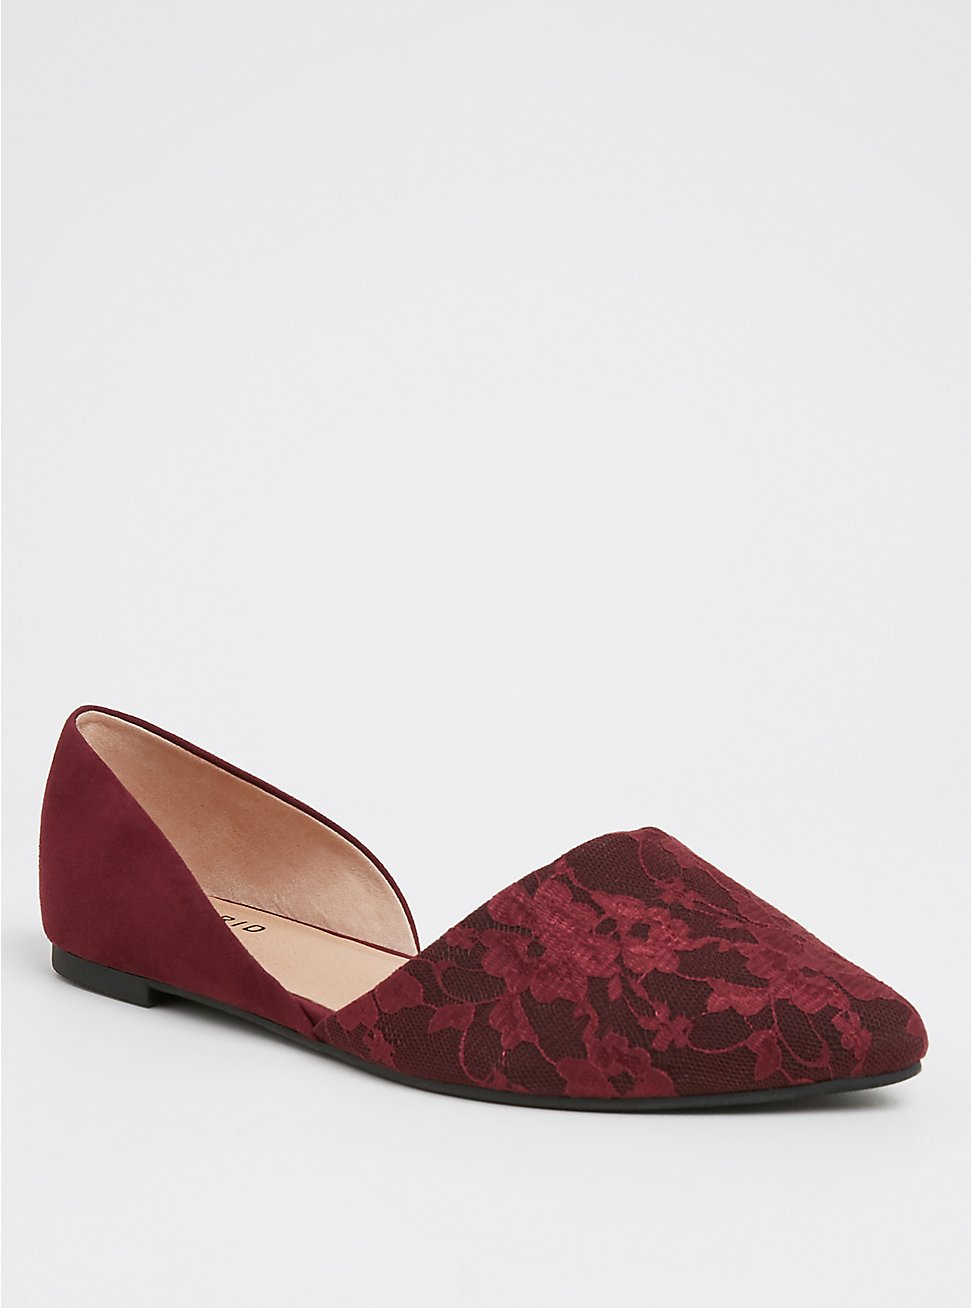 Plus Size Red Wine Lace D'Orsay Flat (WW), BURGUNDY, hi-res